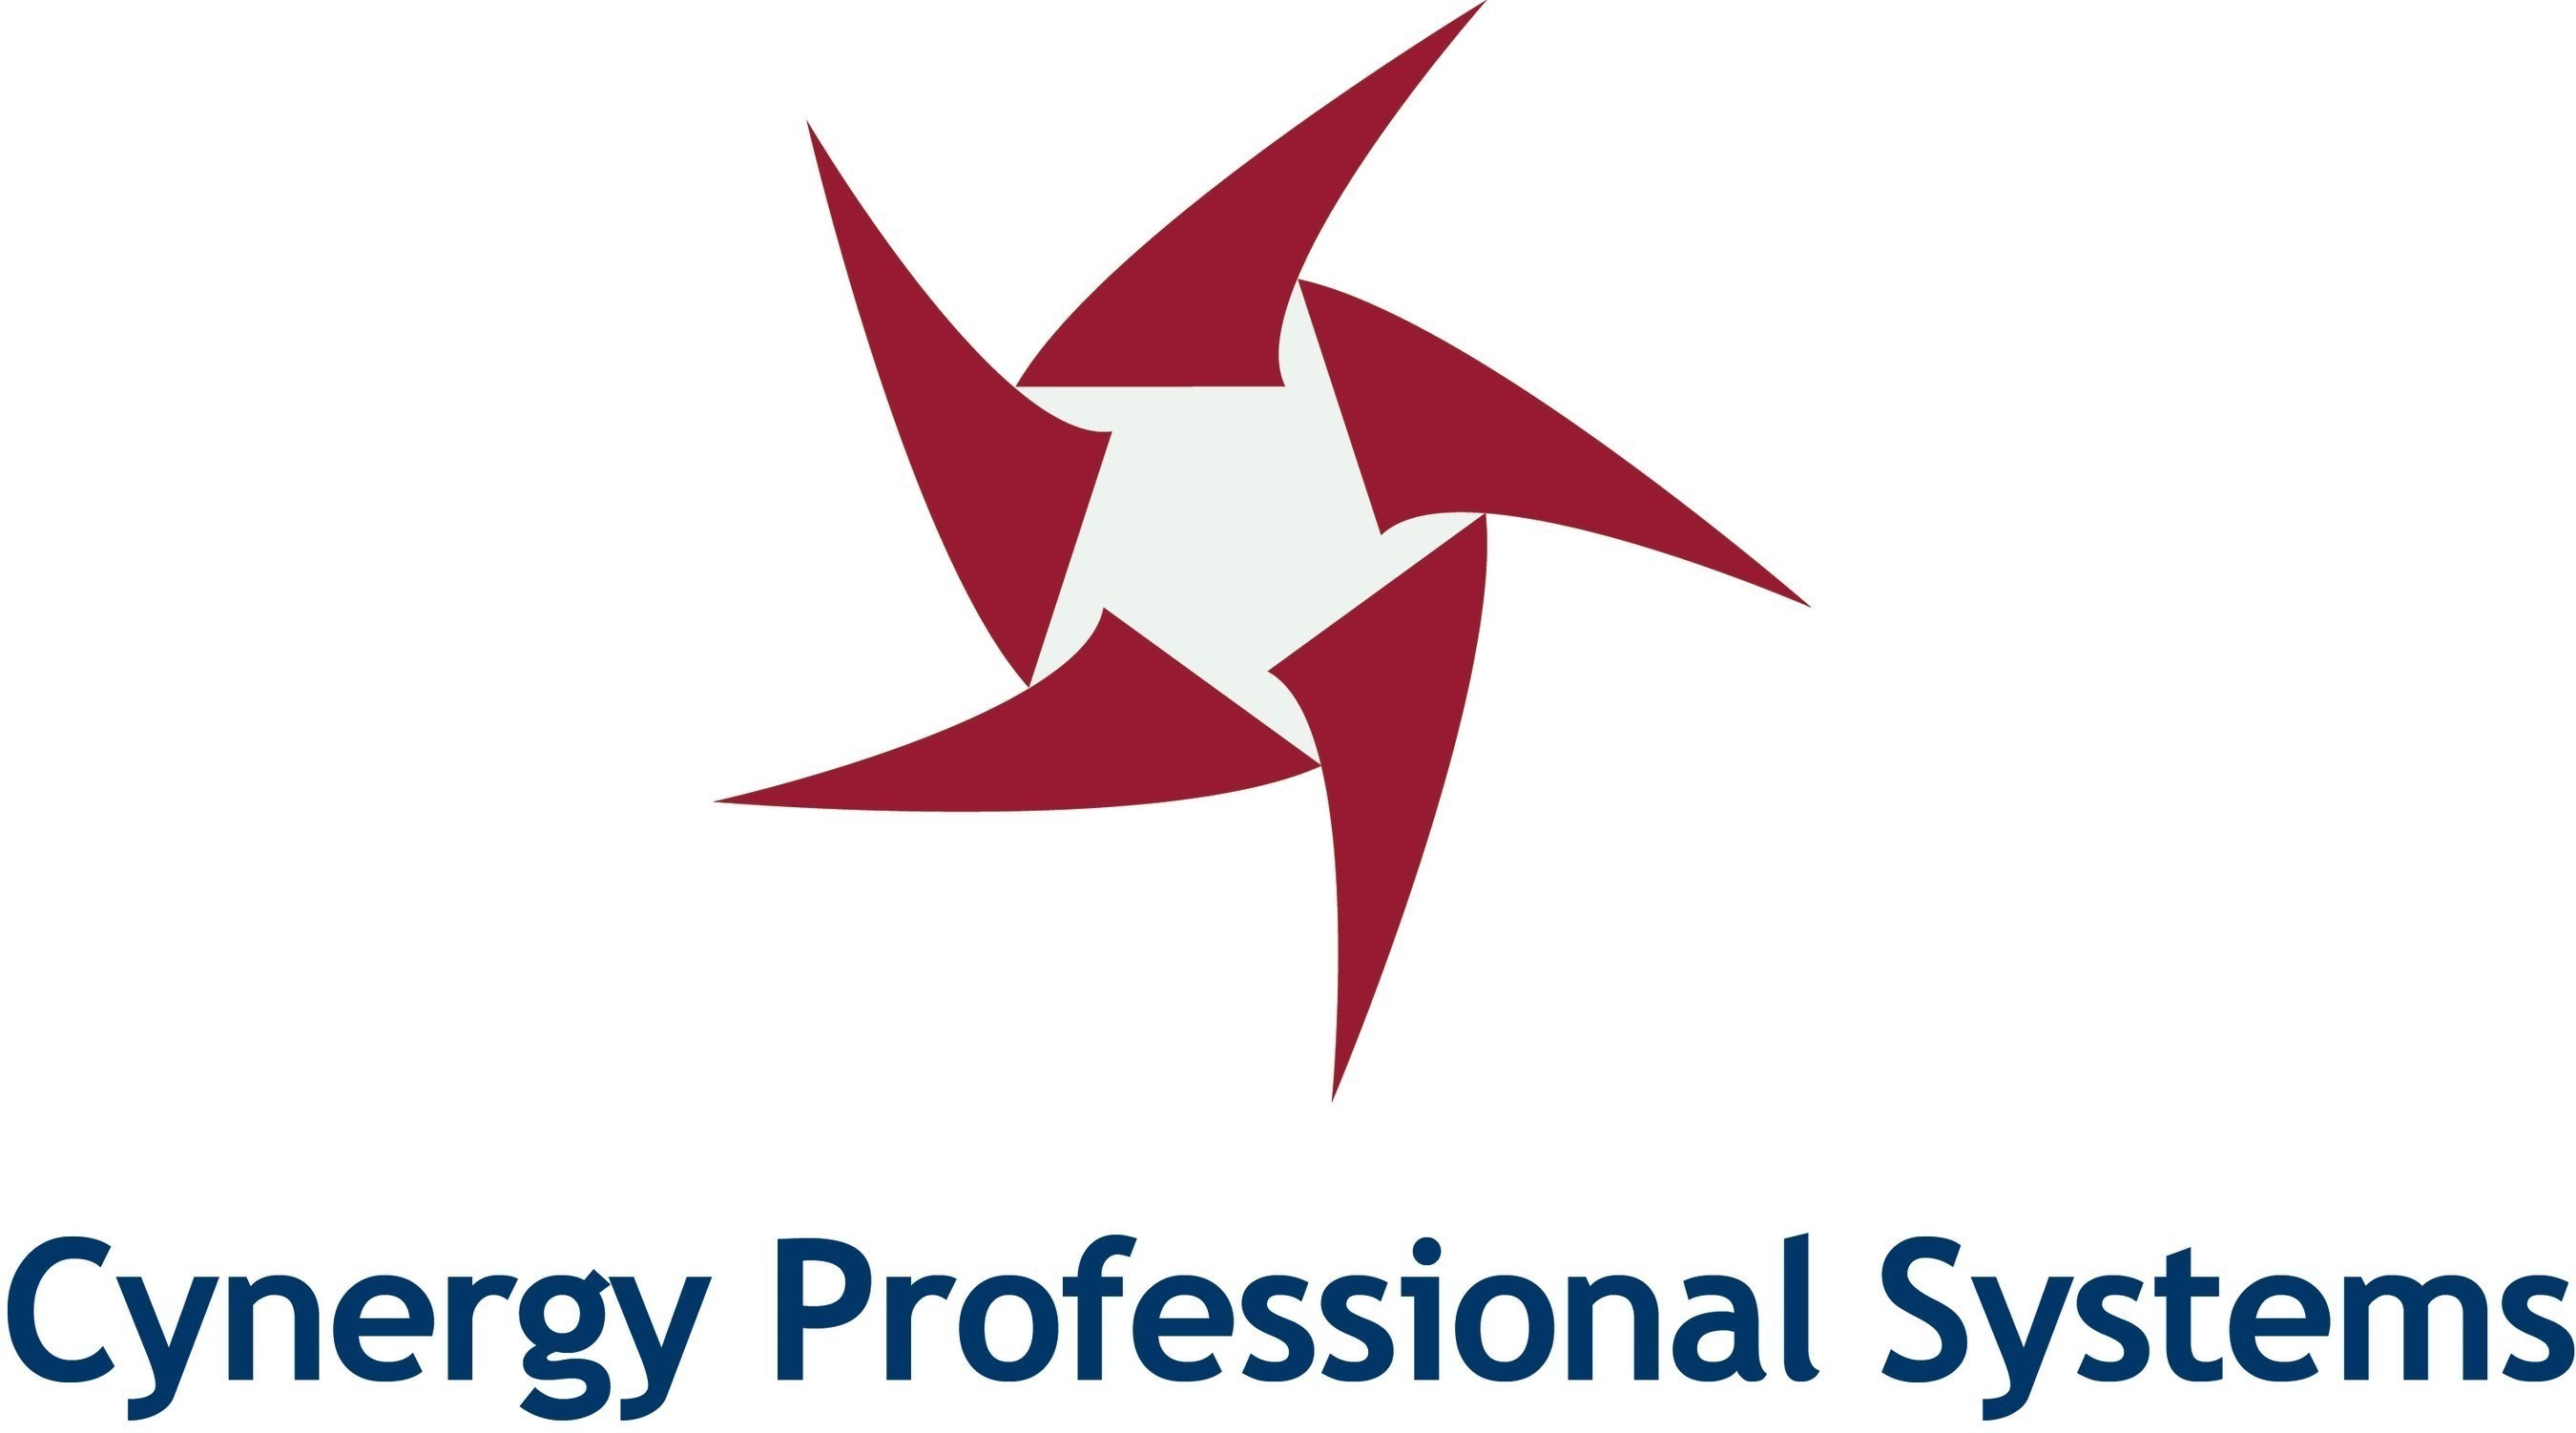 Cynergy Professional Systems Announces Sba 8a Certification